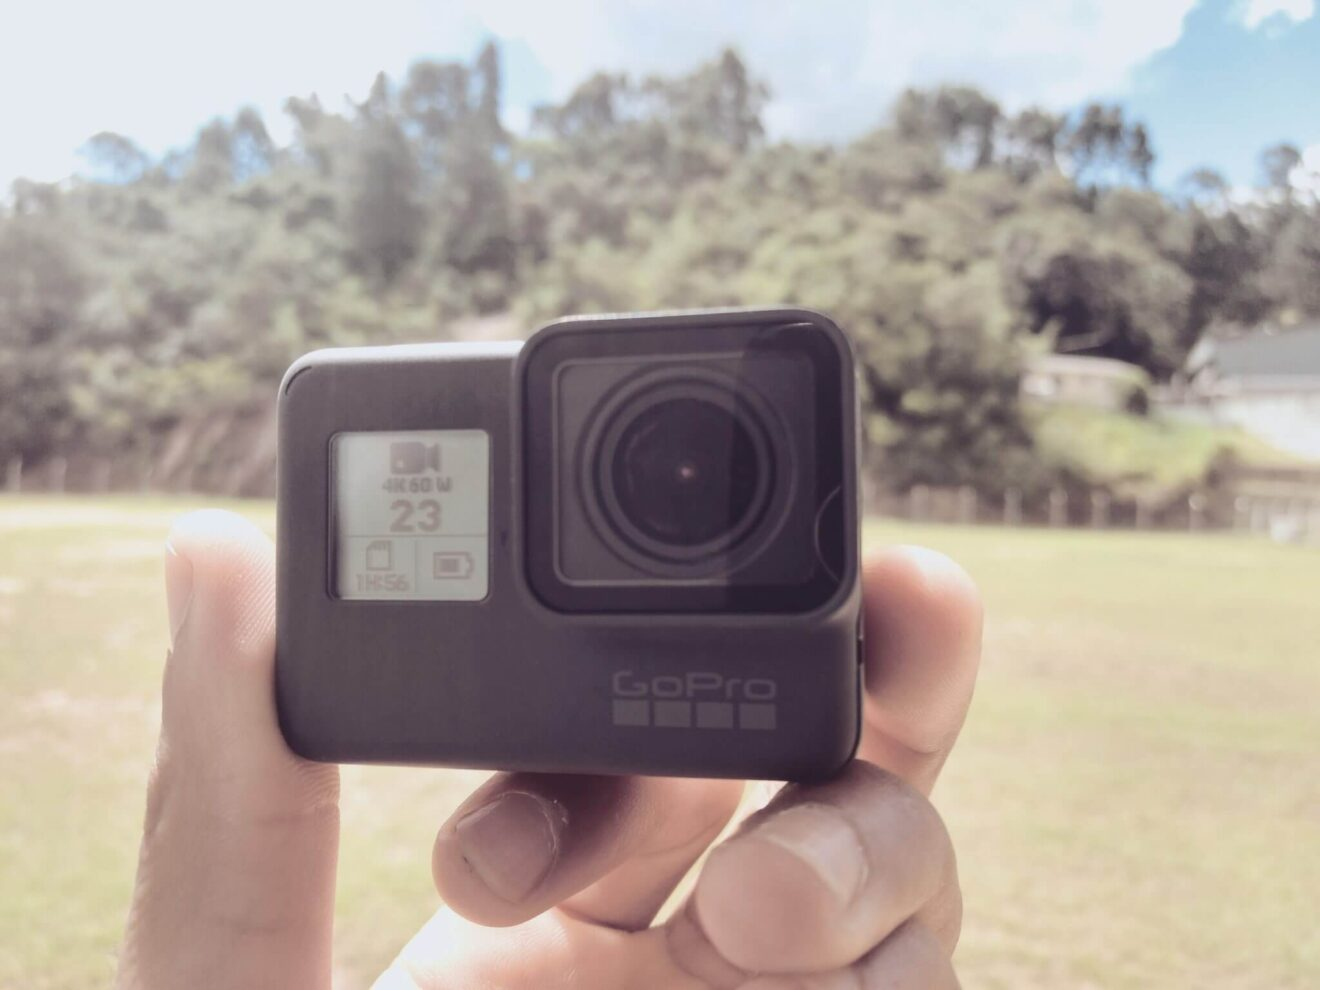 Review: HERO6 BLACK, a nova aposta da GoPro